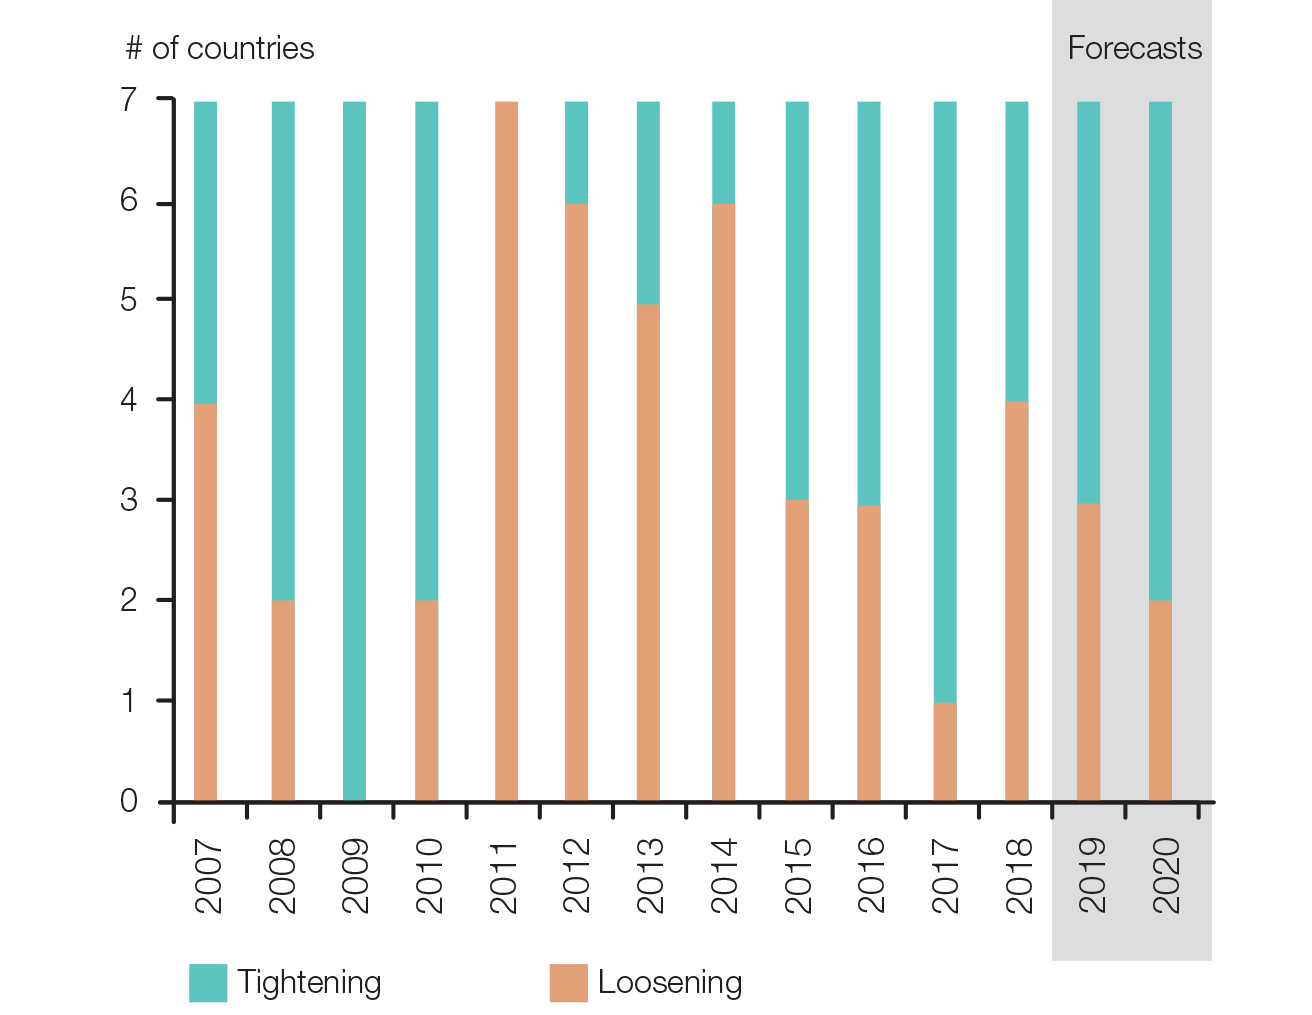 Change in the fiscal stance in G7 countries